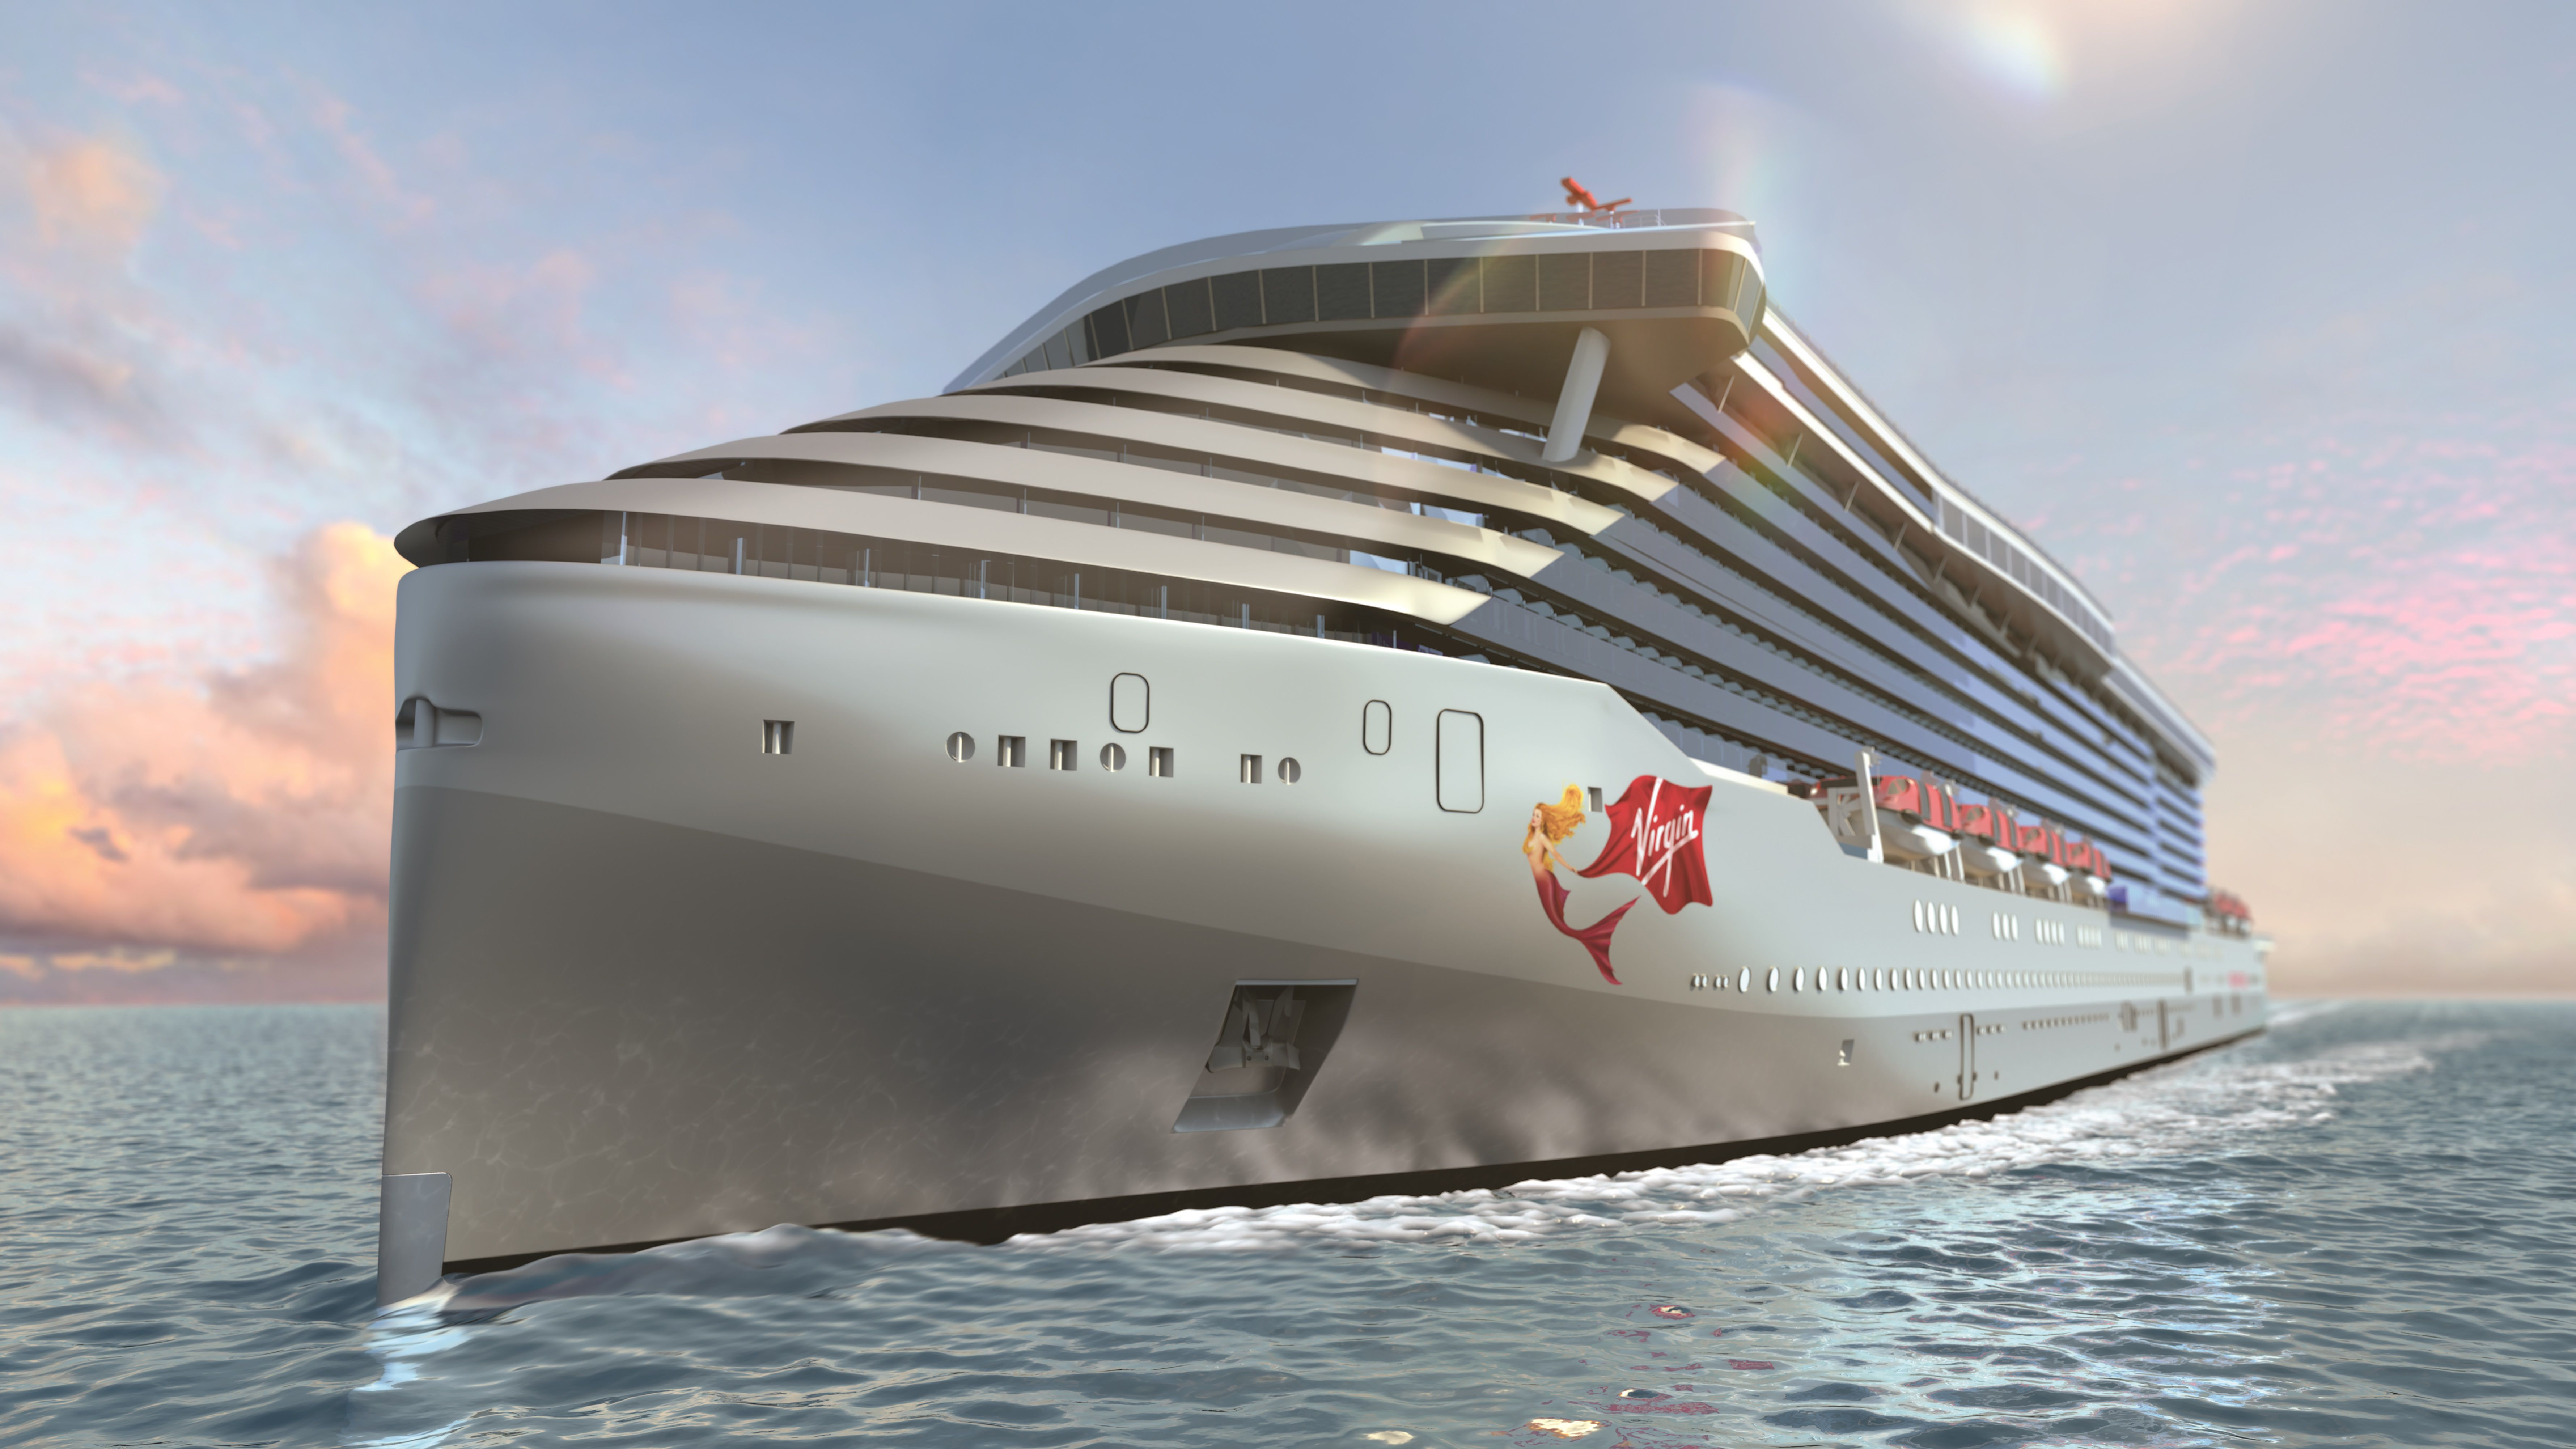 Take A Look Inside Virgin Voyages' Adults Only Cruise Ship, The Scarlet Lady